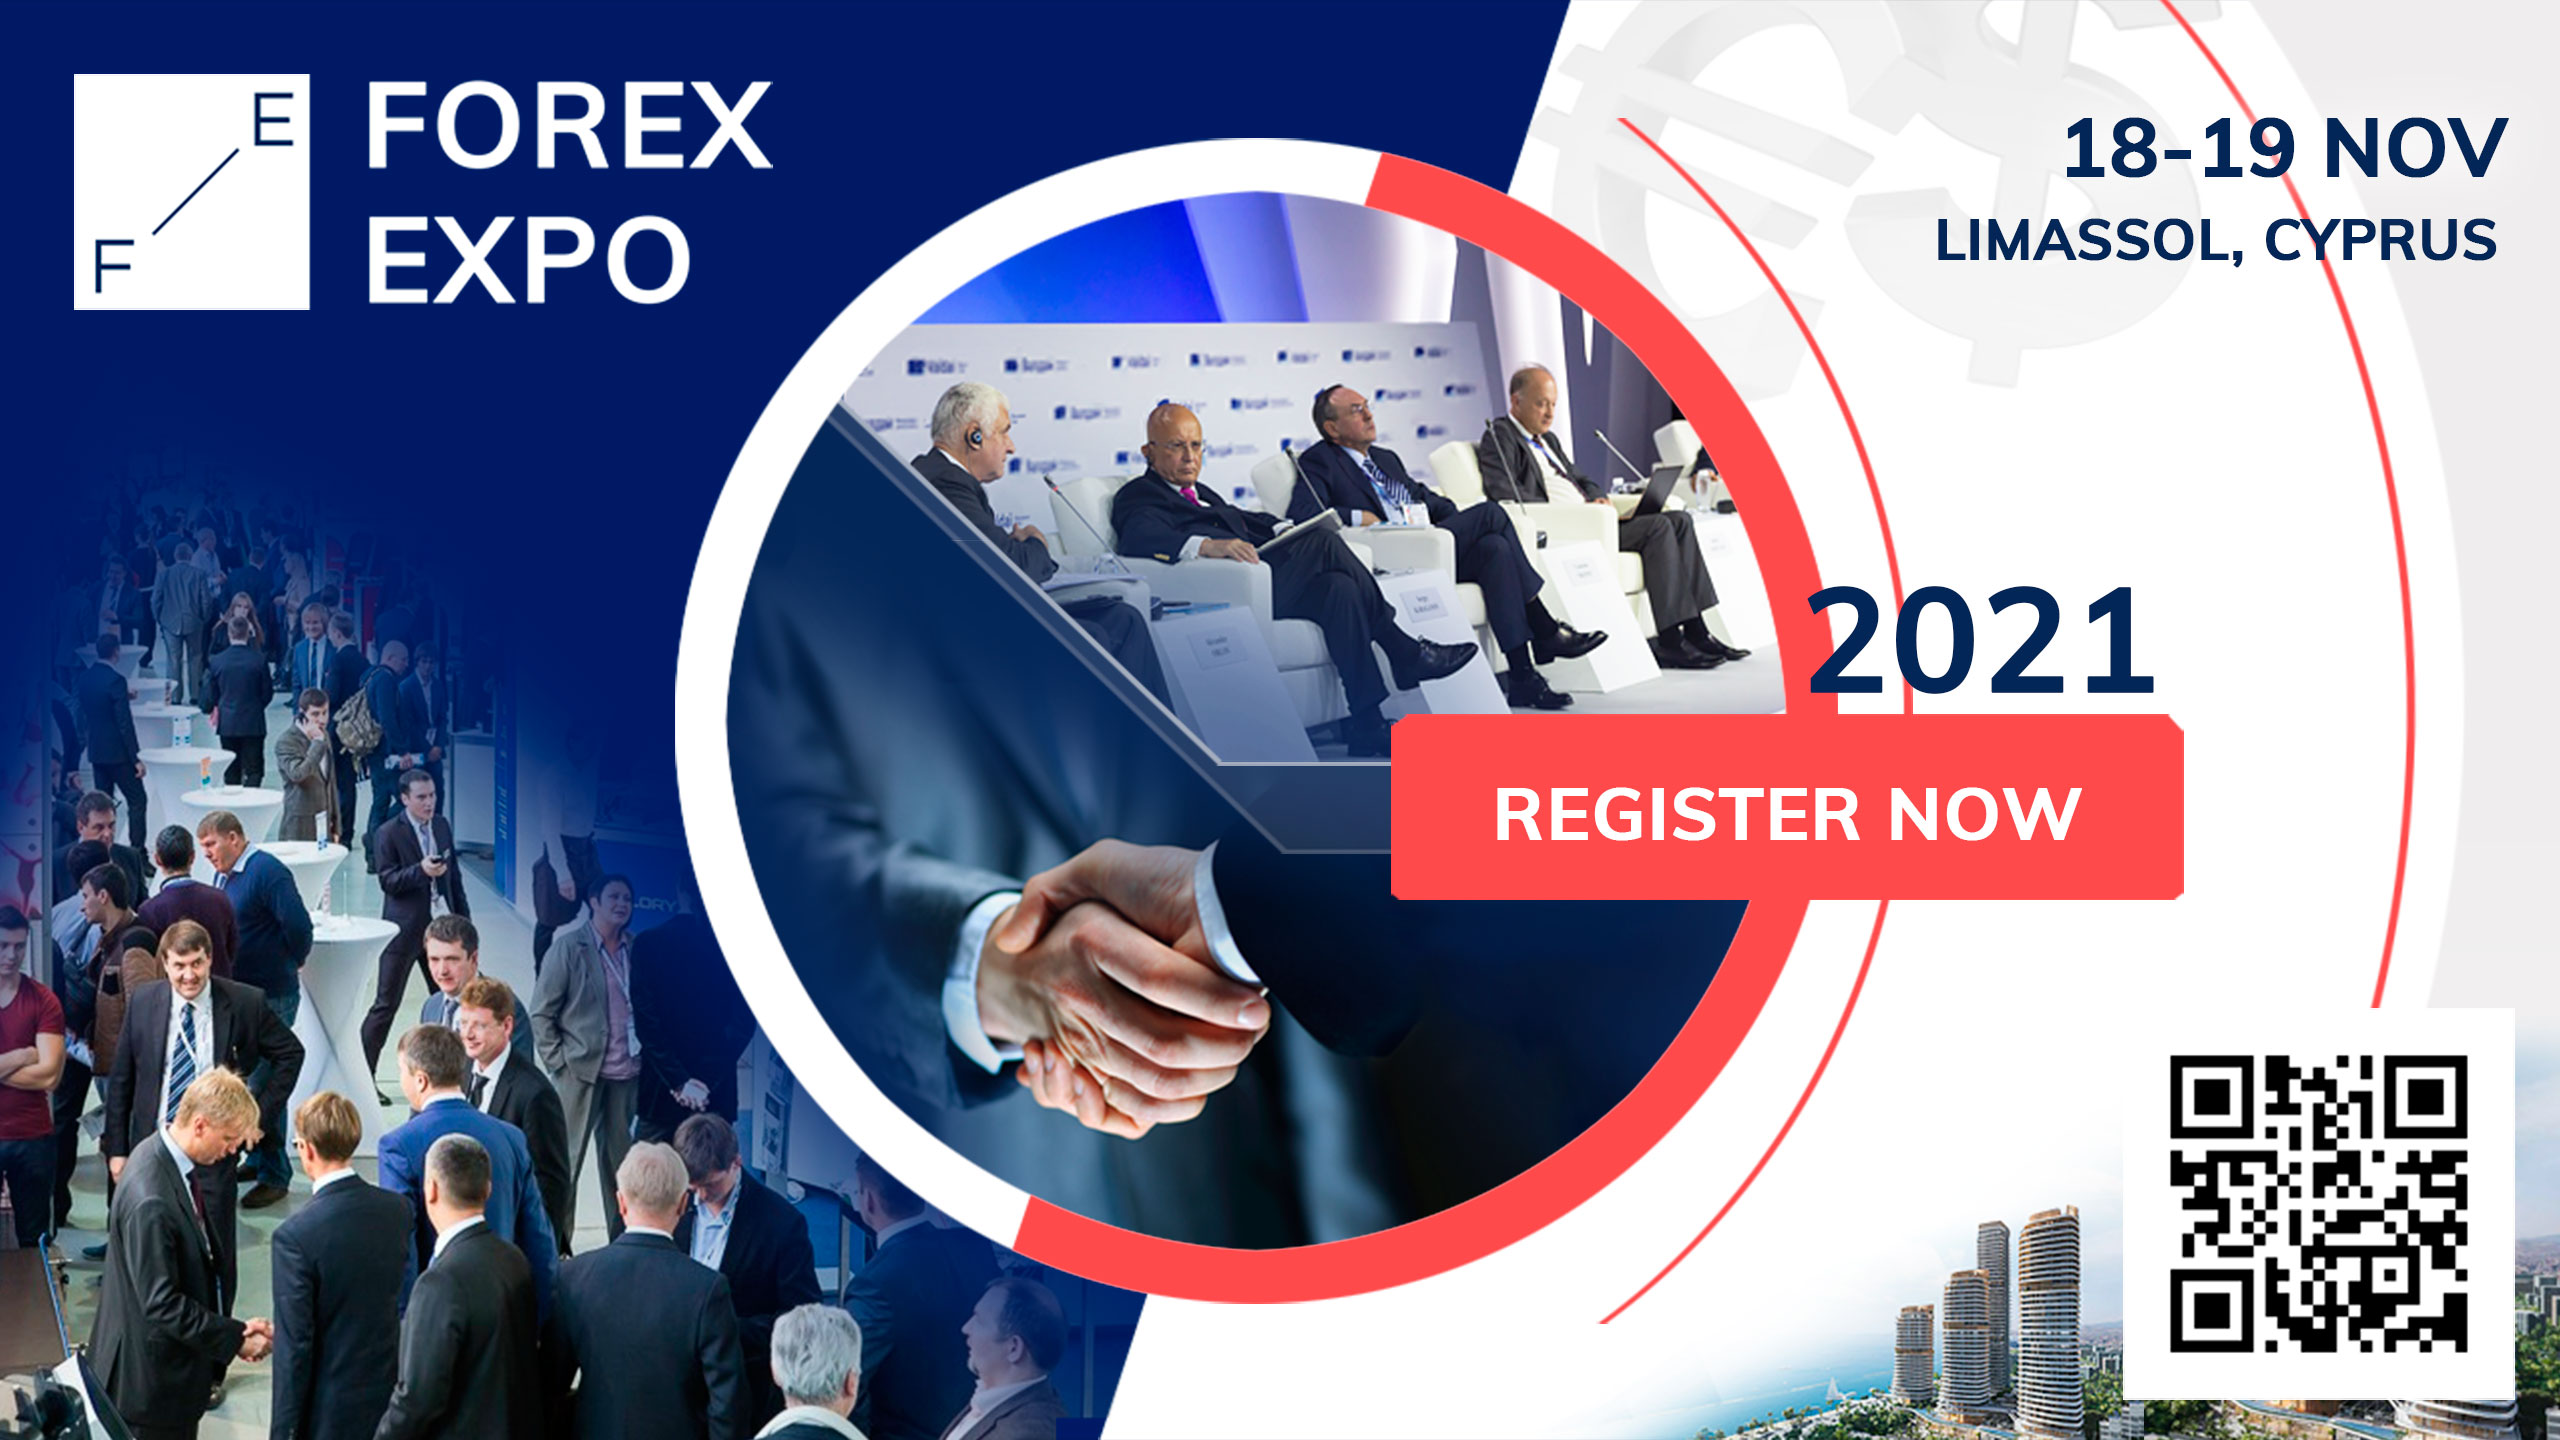 The most expected event in the financial industry – the 20-th Forex Expo 2021 will take place in the hub for the whole Forex Industry in Cyprus. The expo will be bursting with great speakers and professionals of fintech. Here is a place where forex-related businesses, investment companies, banks, liquidity providers, trading software, affiliates will have a possibility to meet face2face and discuss the essential issues of the most recent news in forex trading. At the Forex Expo currency trading companies will establish new business contacts and make themselves much more familiar to their potential clients.